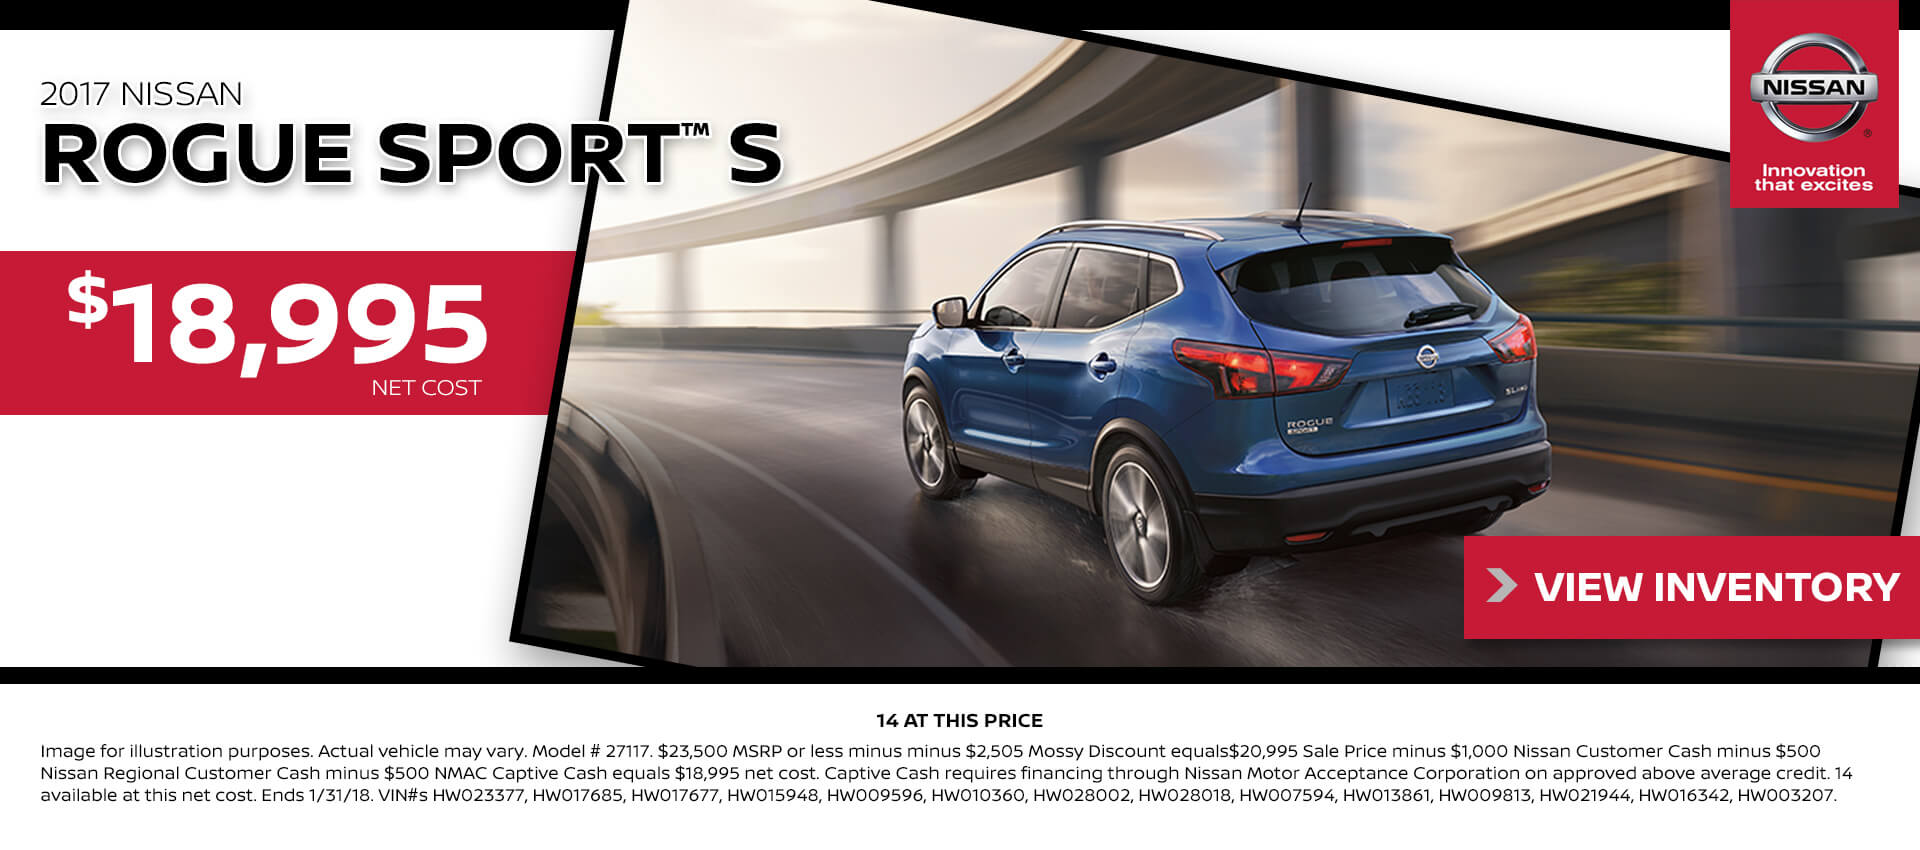 New 2016 2017 Nissan Used Car Dealer In San Diego Ca Mossy